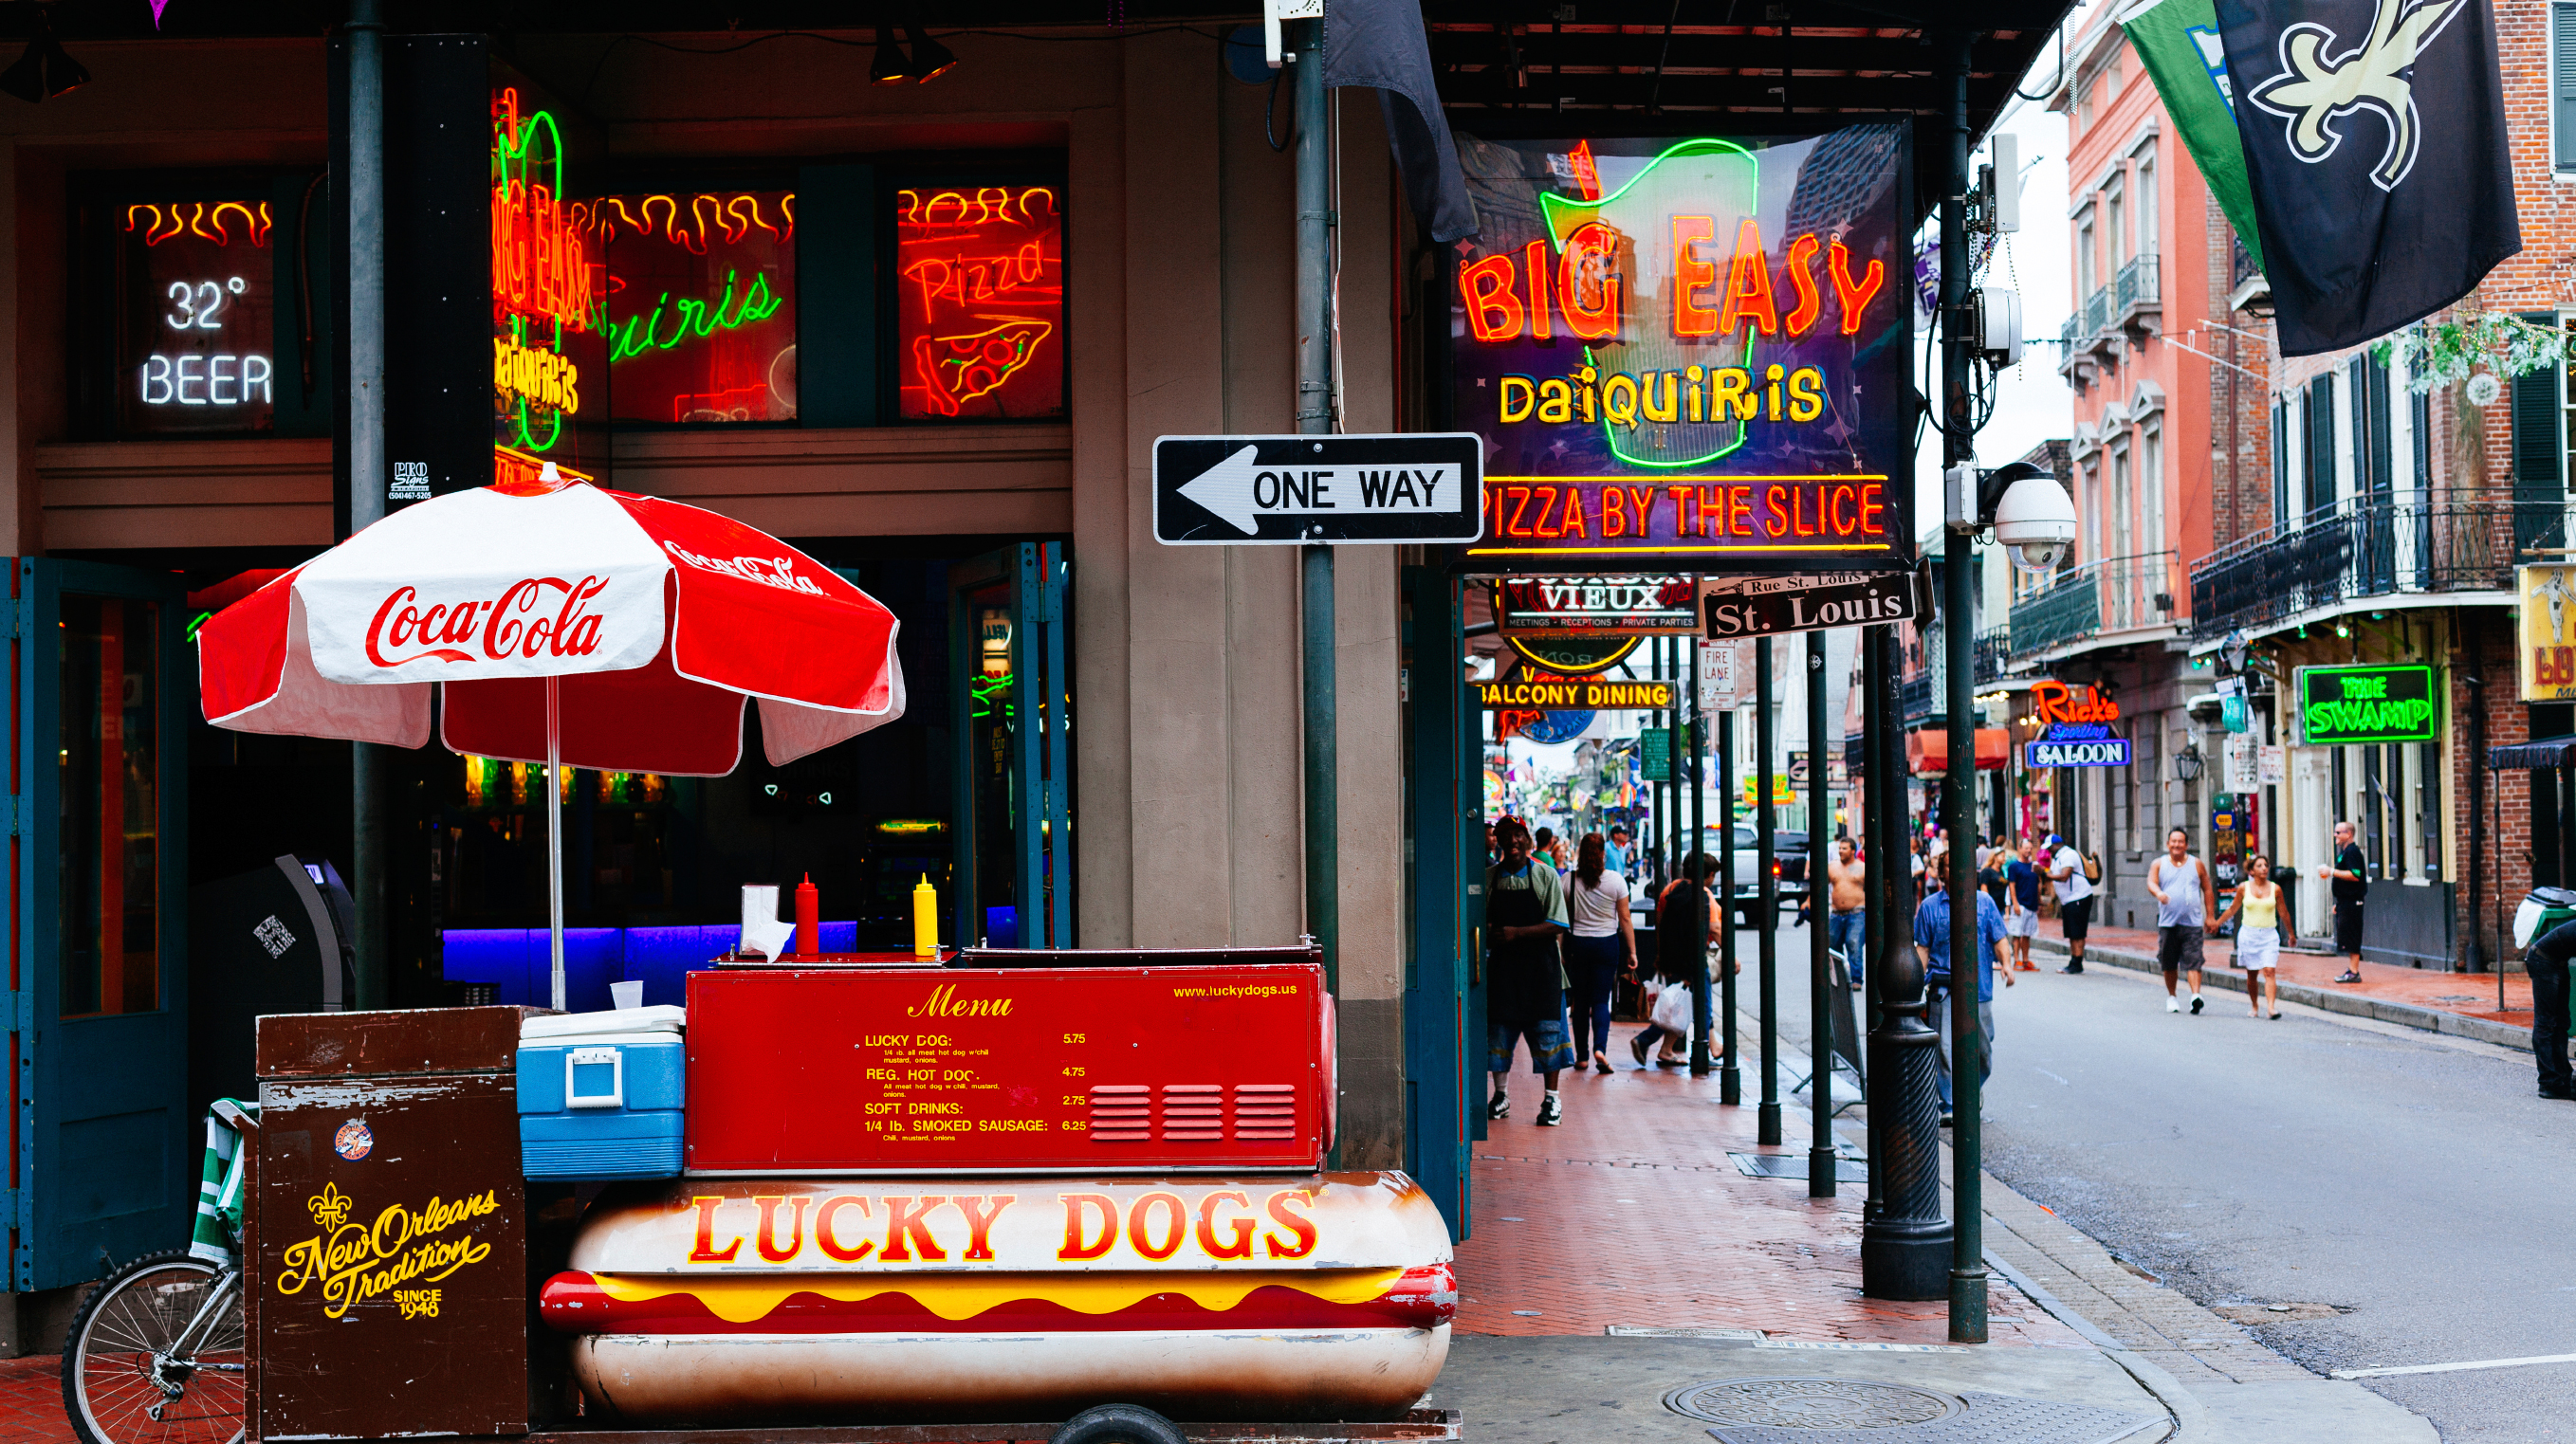 Bourbon Street www.istockphoto.com:photo:hot-dogs-stand-in-bourbon-street-new-orleans-usa-gm537274703-58146490?st=066e5ee